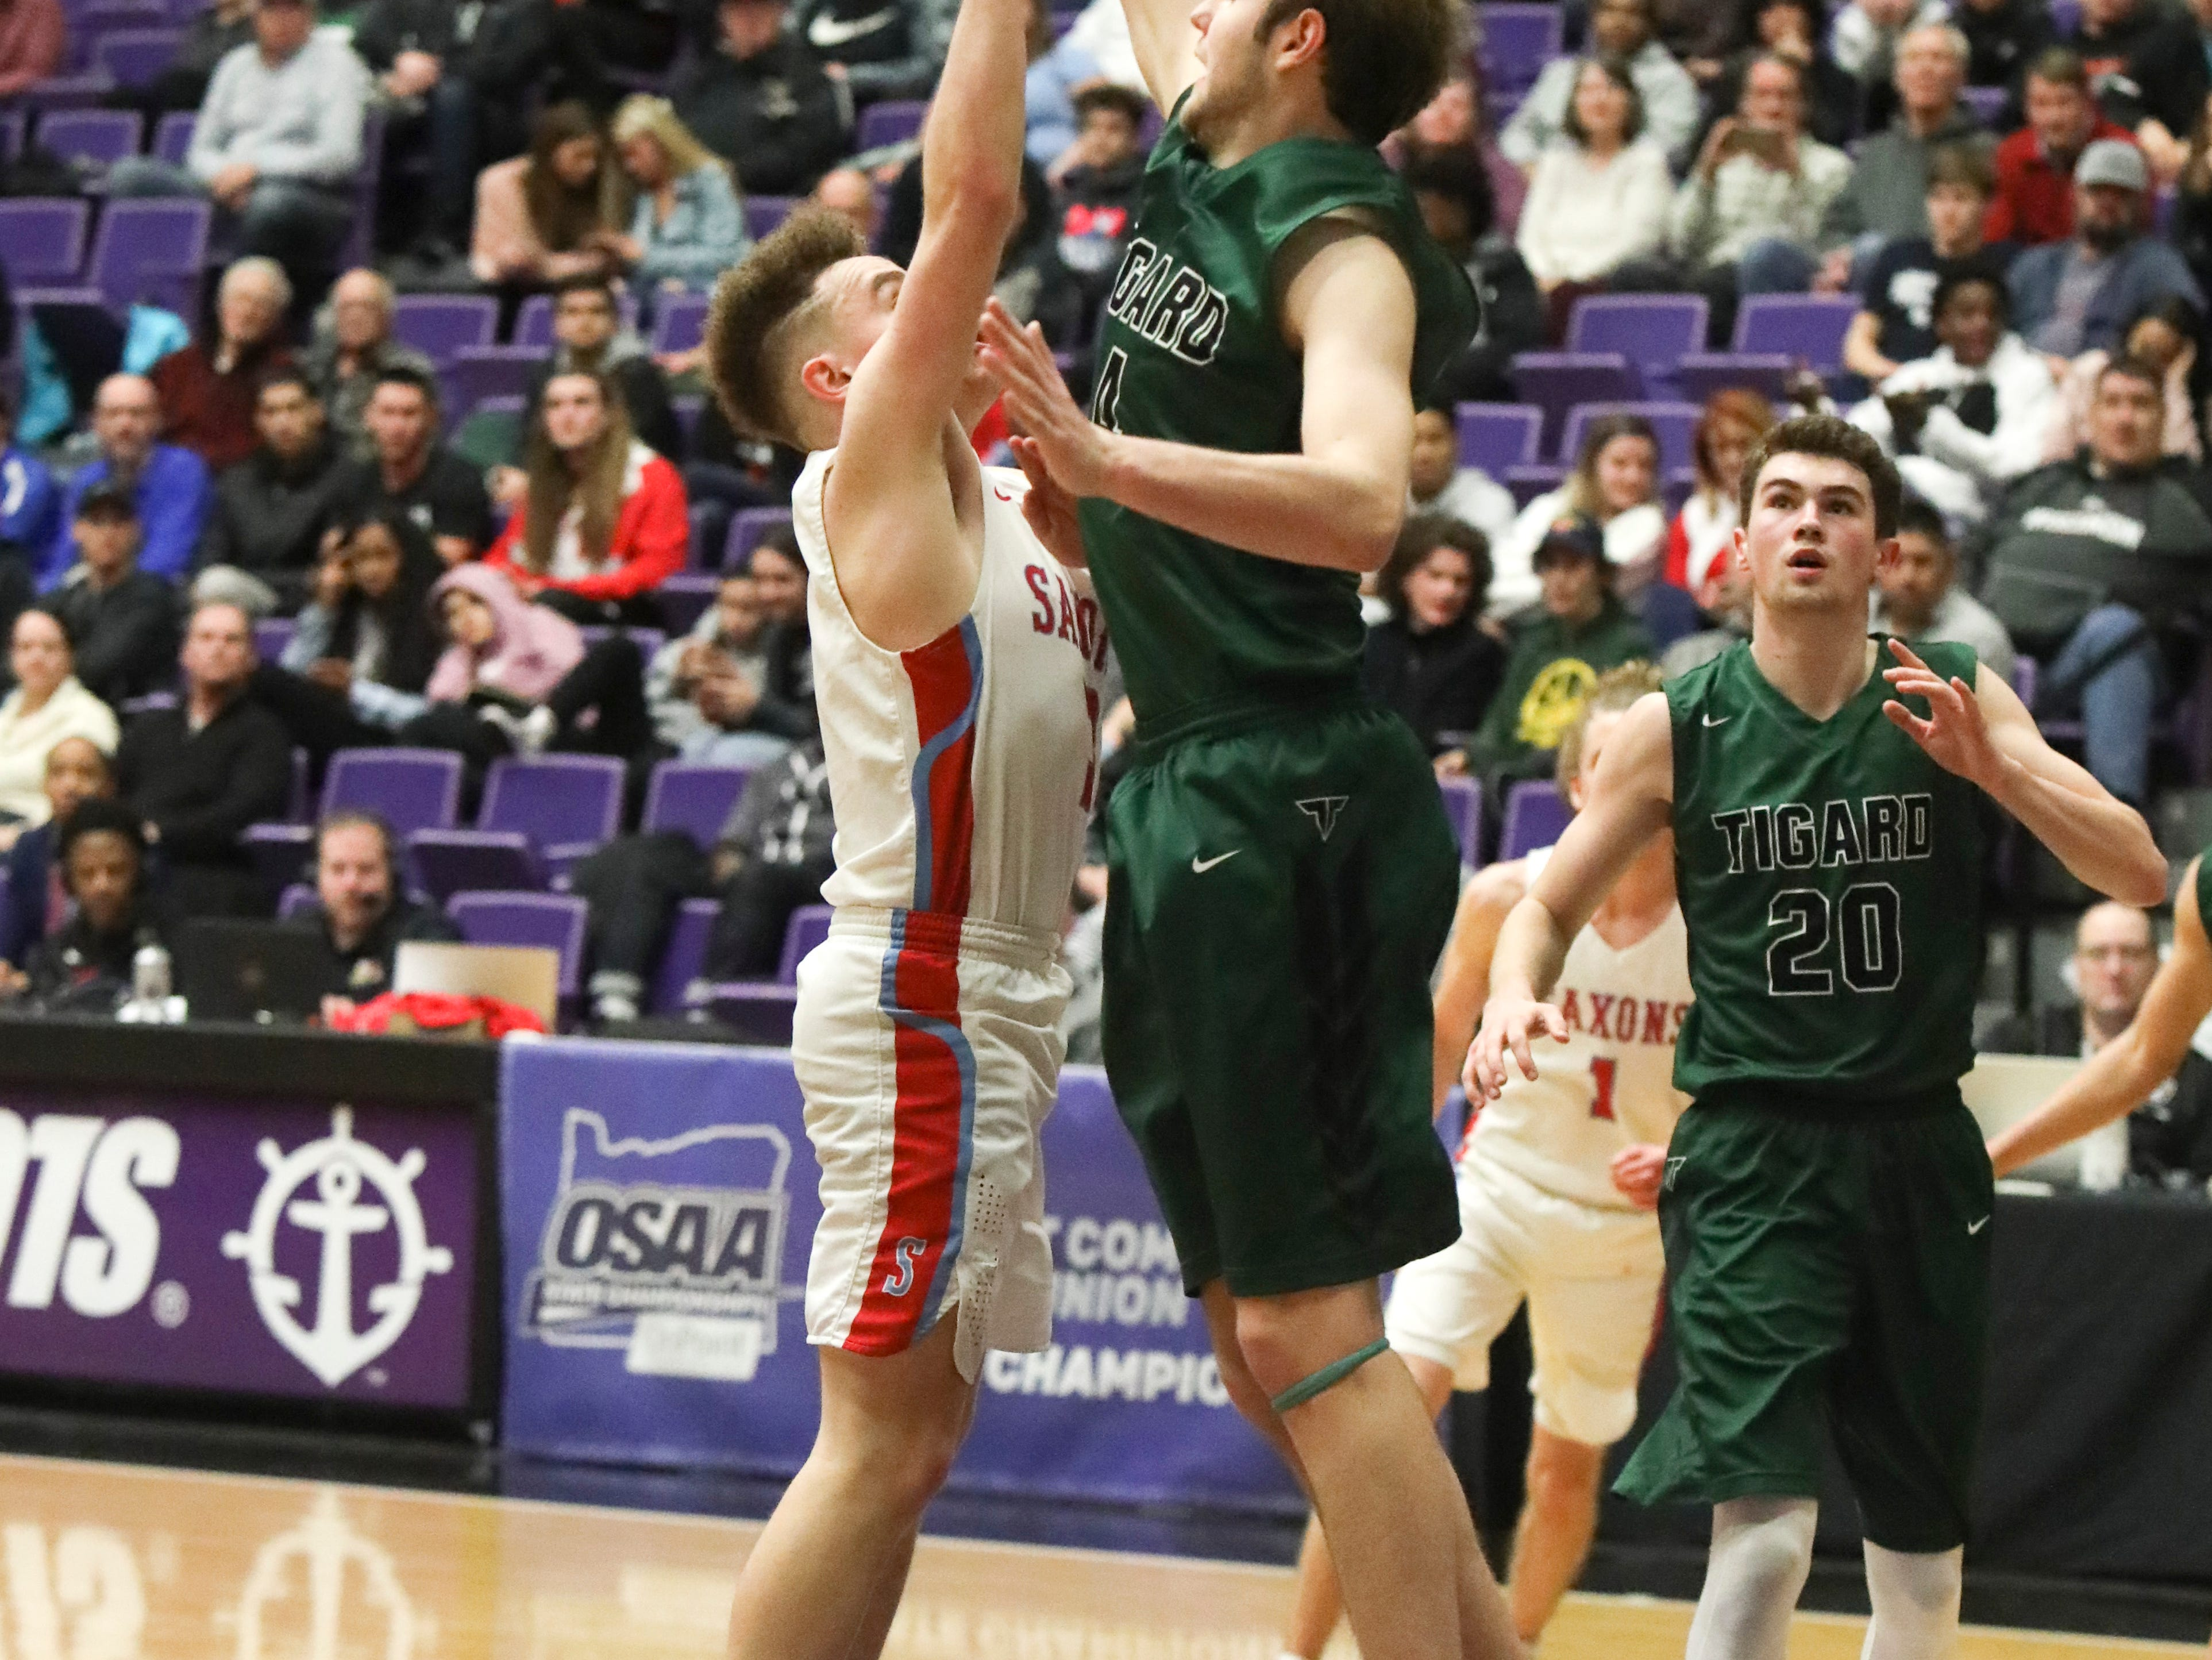 South Salem's Trey Galbraith (3) shoots over Tigard's Stevie Schlabach (4) during the OSAA 6A boys basketball state tournament quarterfinal on Wednesday, March 6 at Chiles Center.